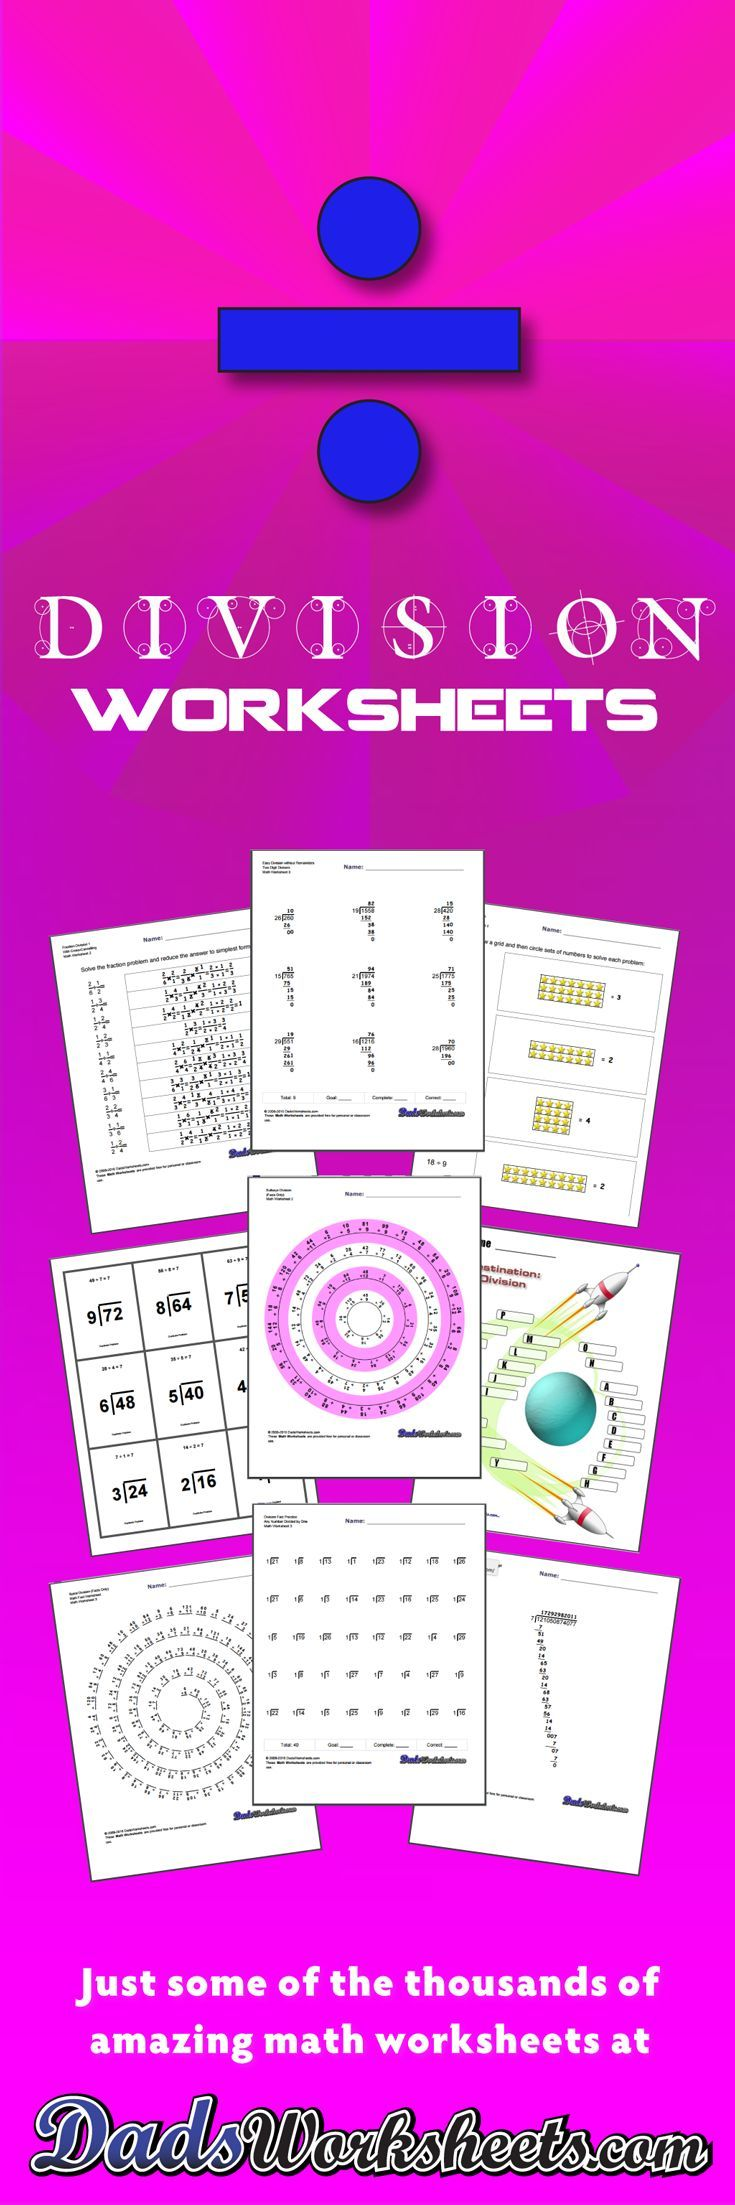 Printable Division Worksheets with Answer Keys! Timed